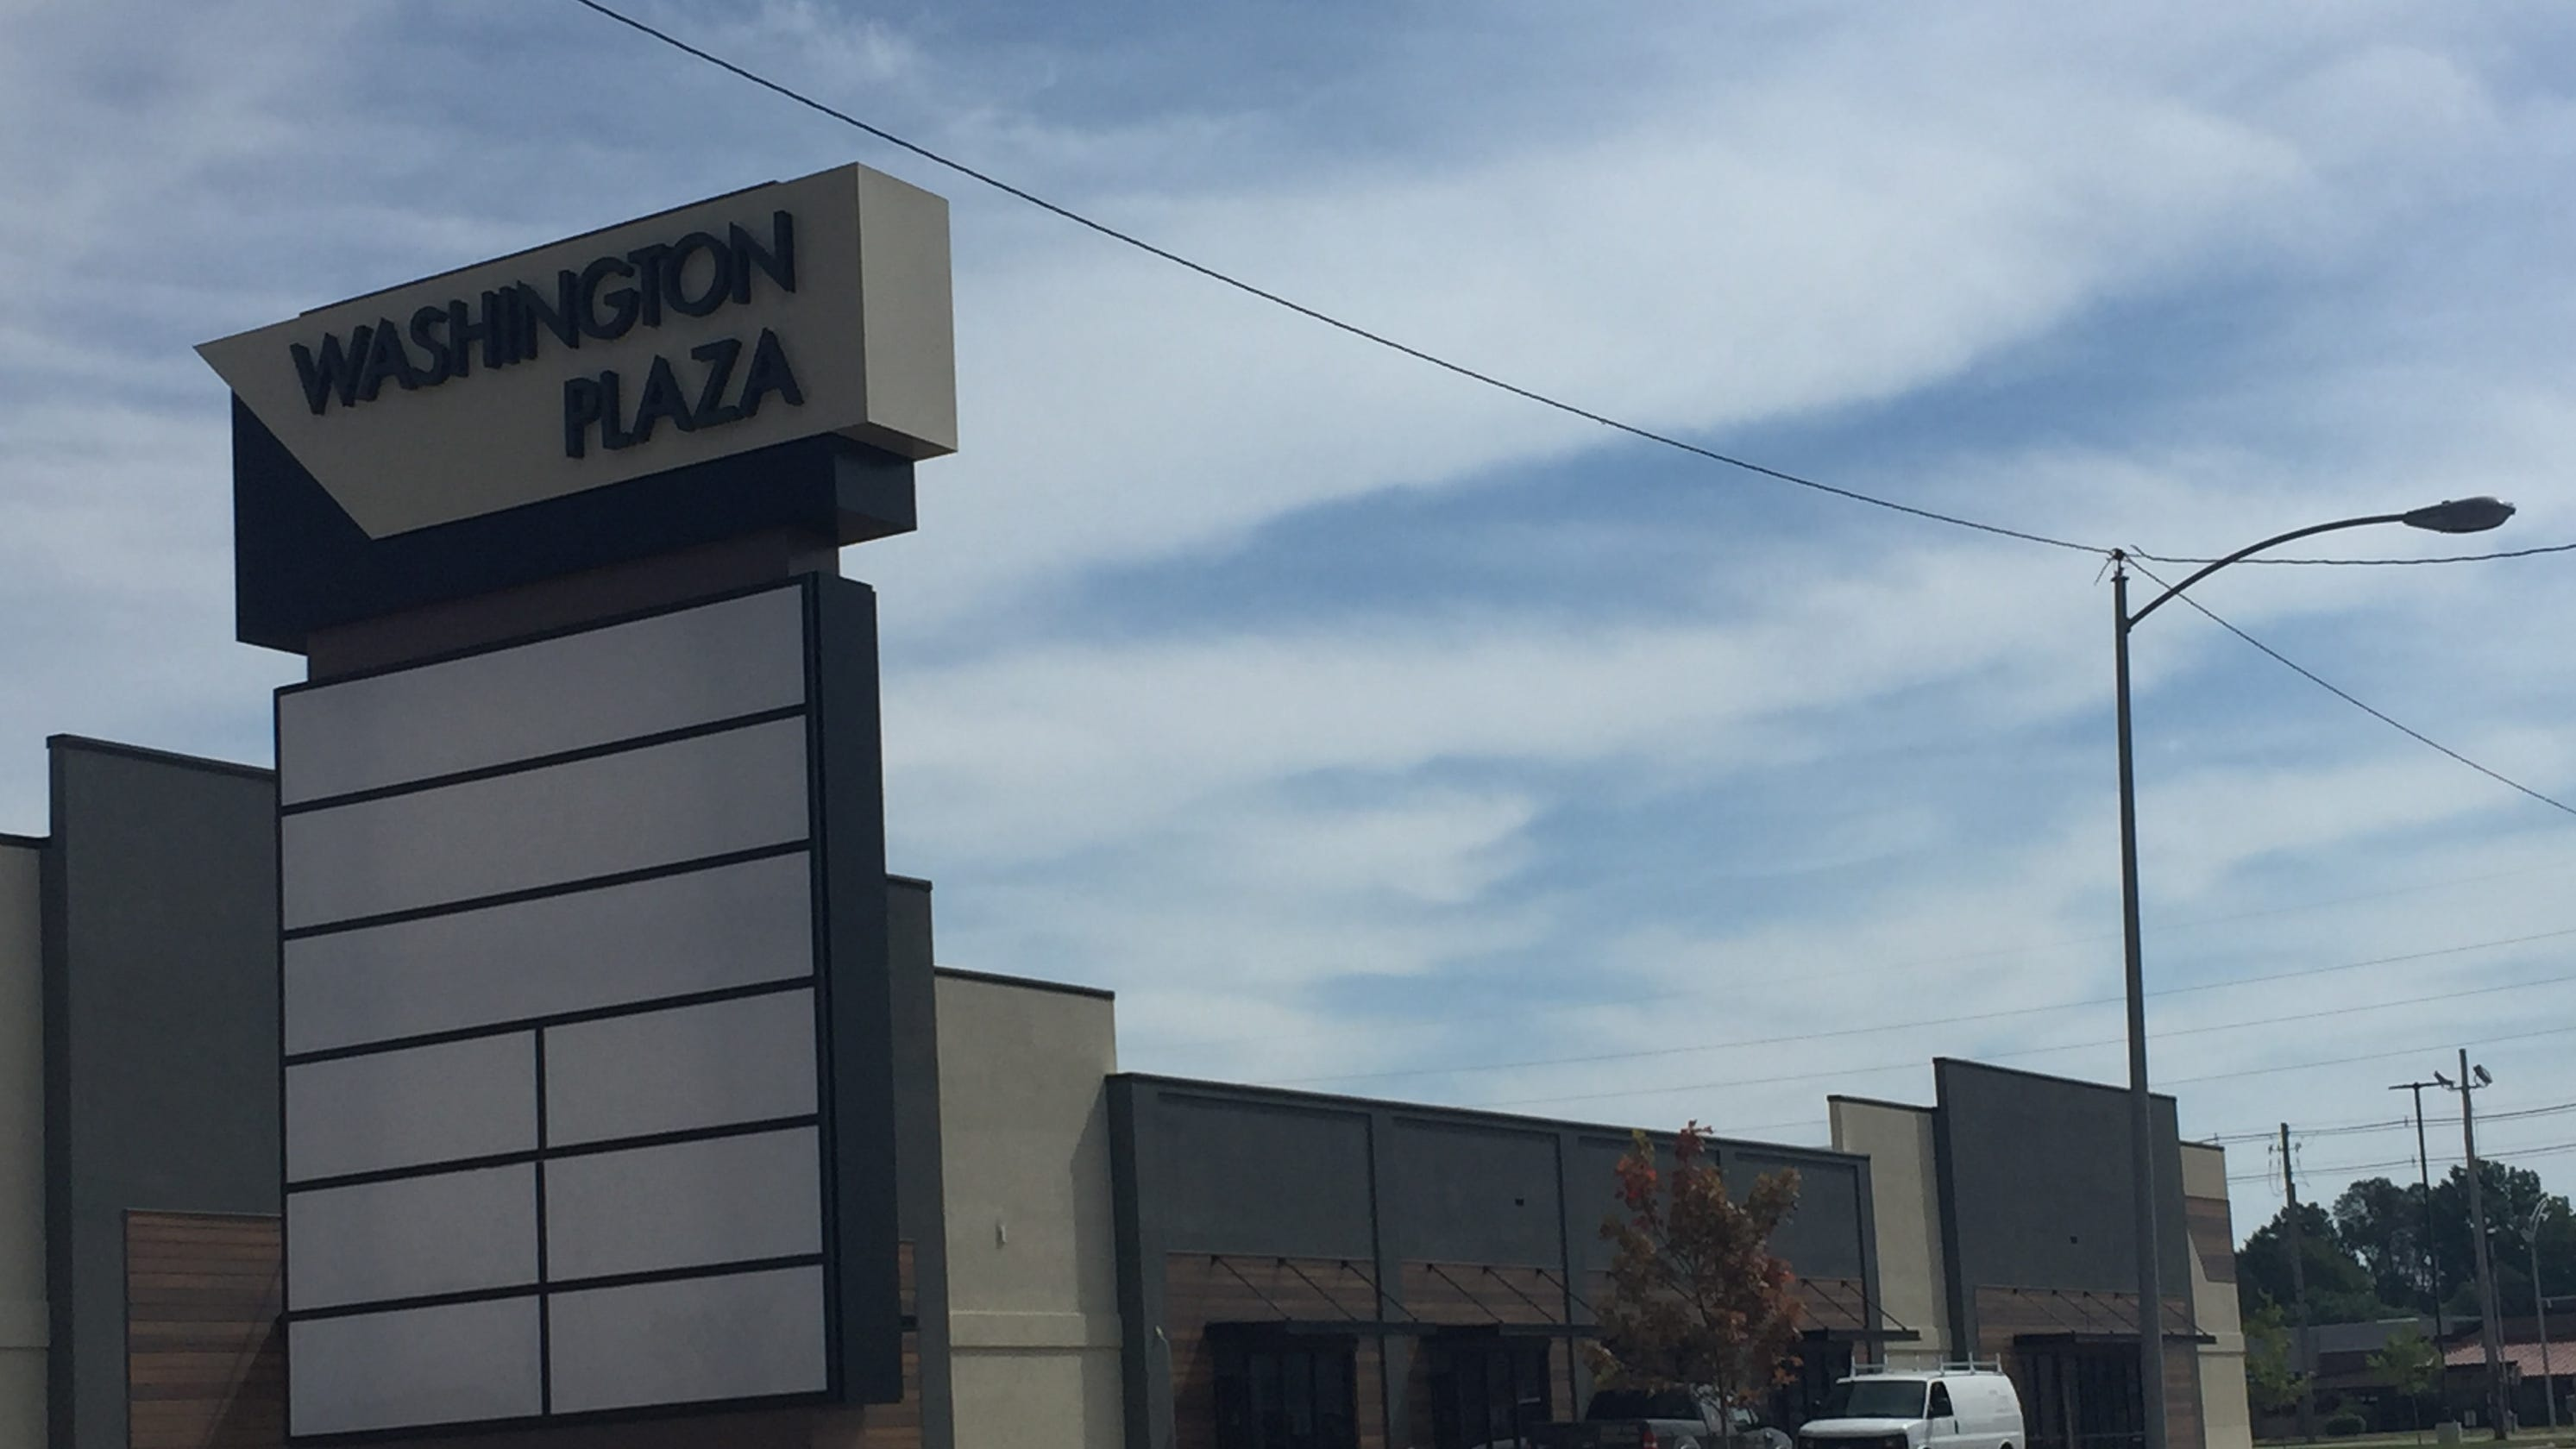 Washington Plaza on Evansville's East Side announces its first tenants